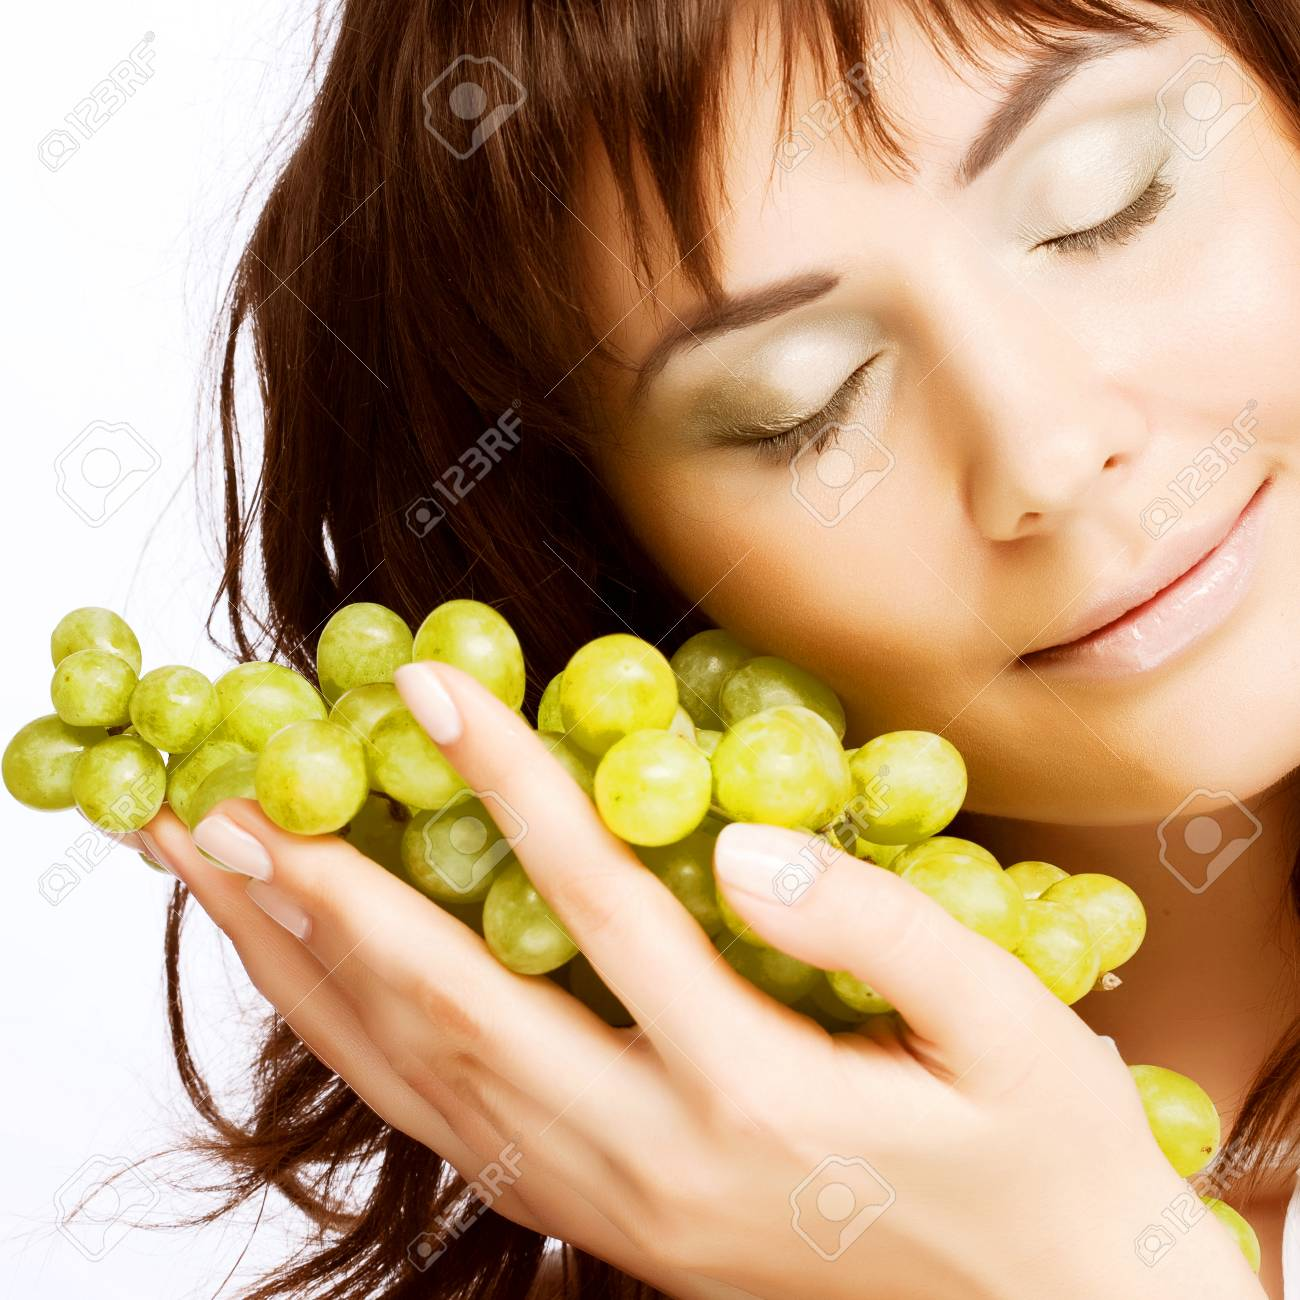 Young Woman With Green Grapes